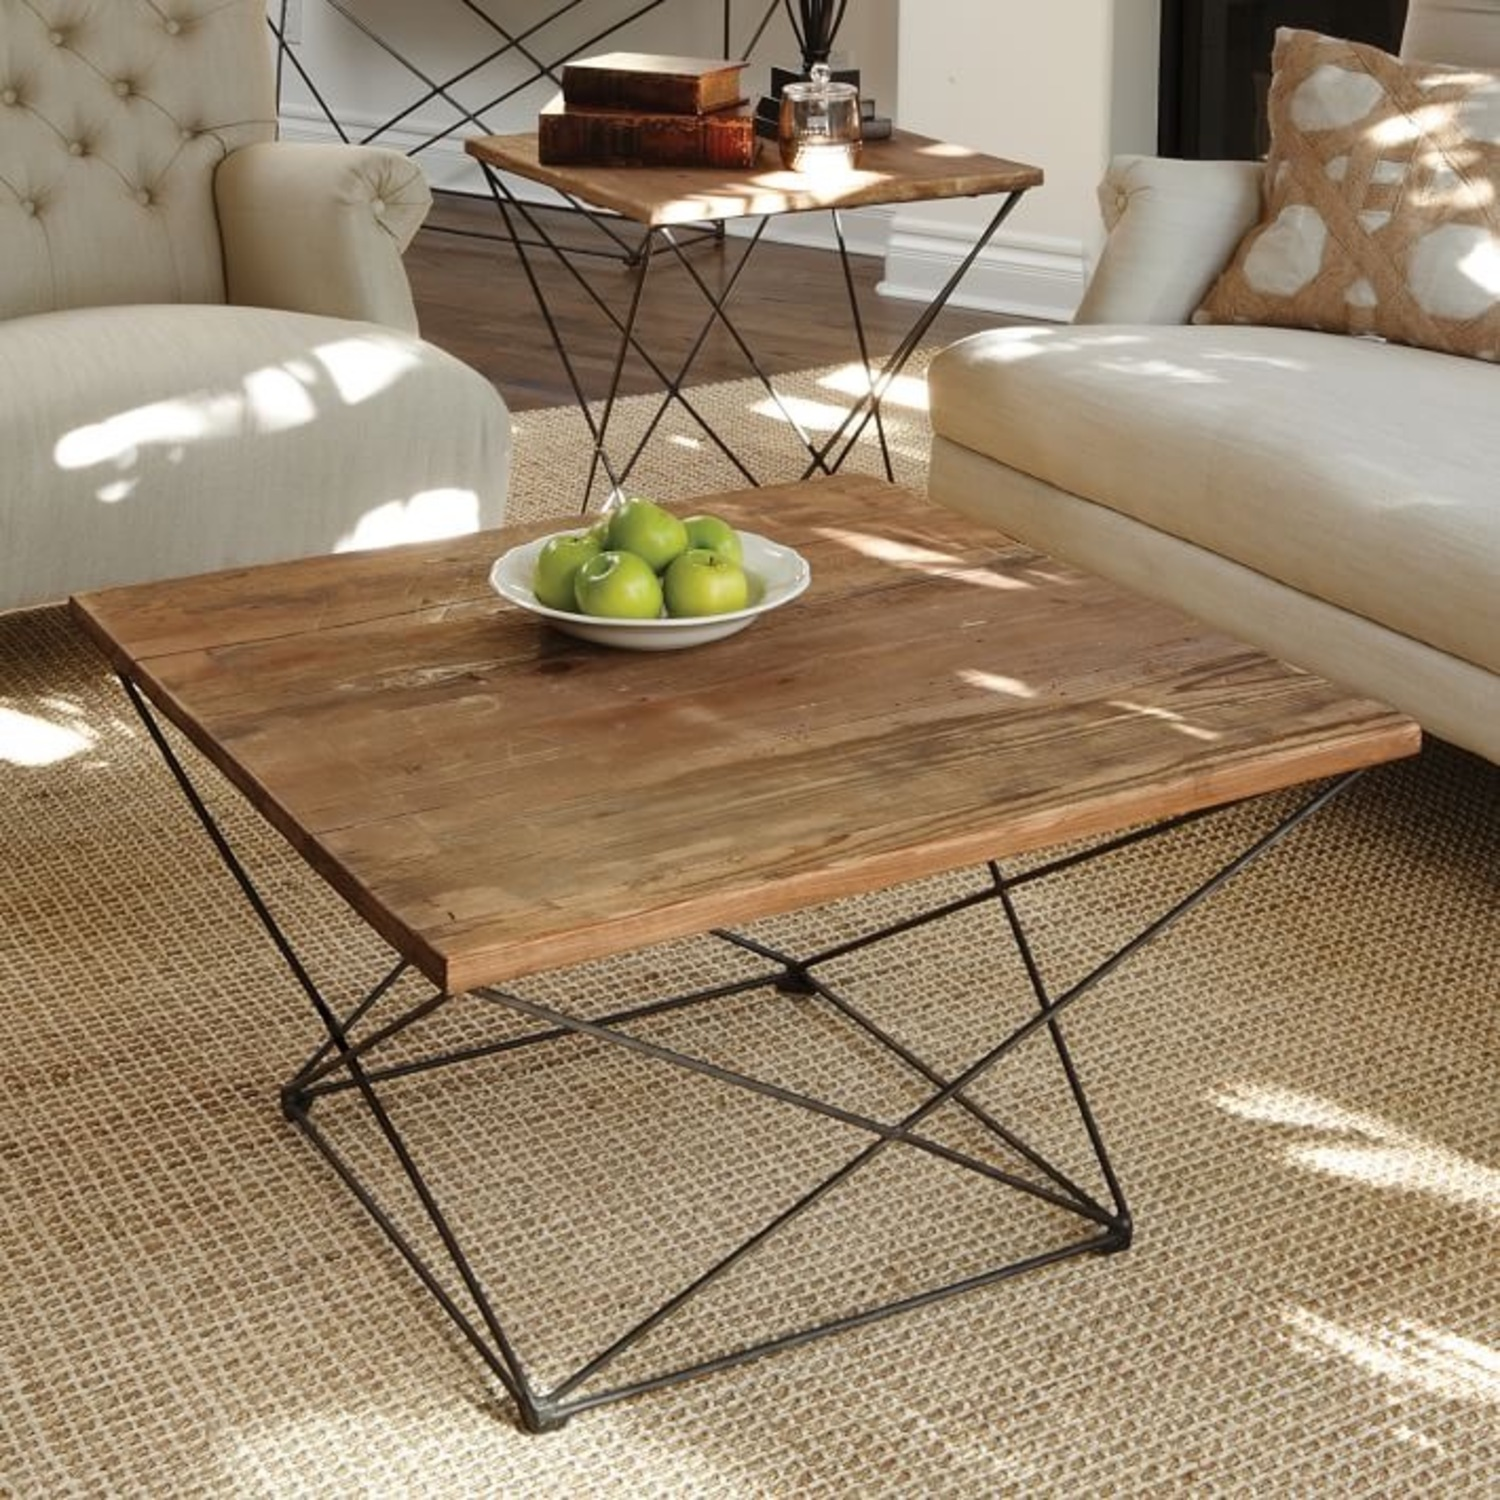 West Elm Reclaimed Wood Coffee Table - image-1